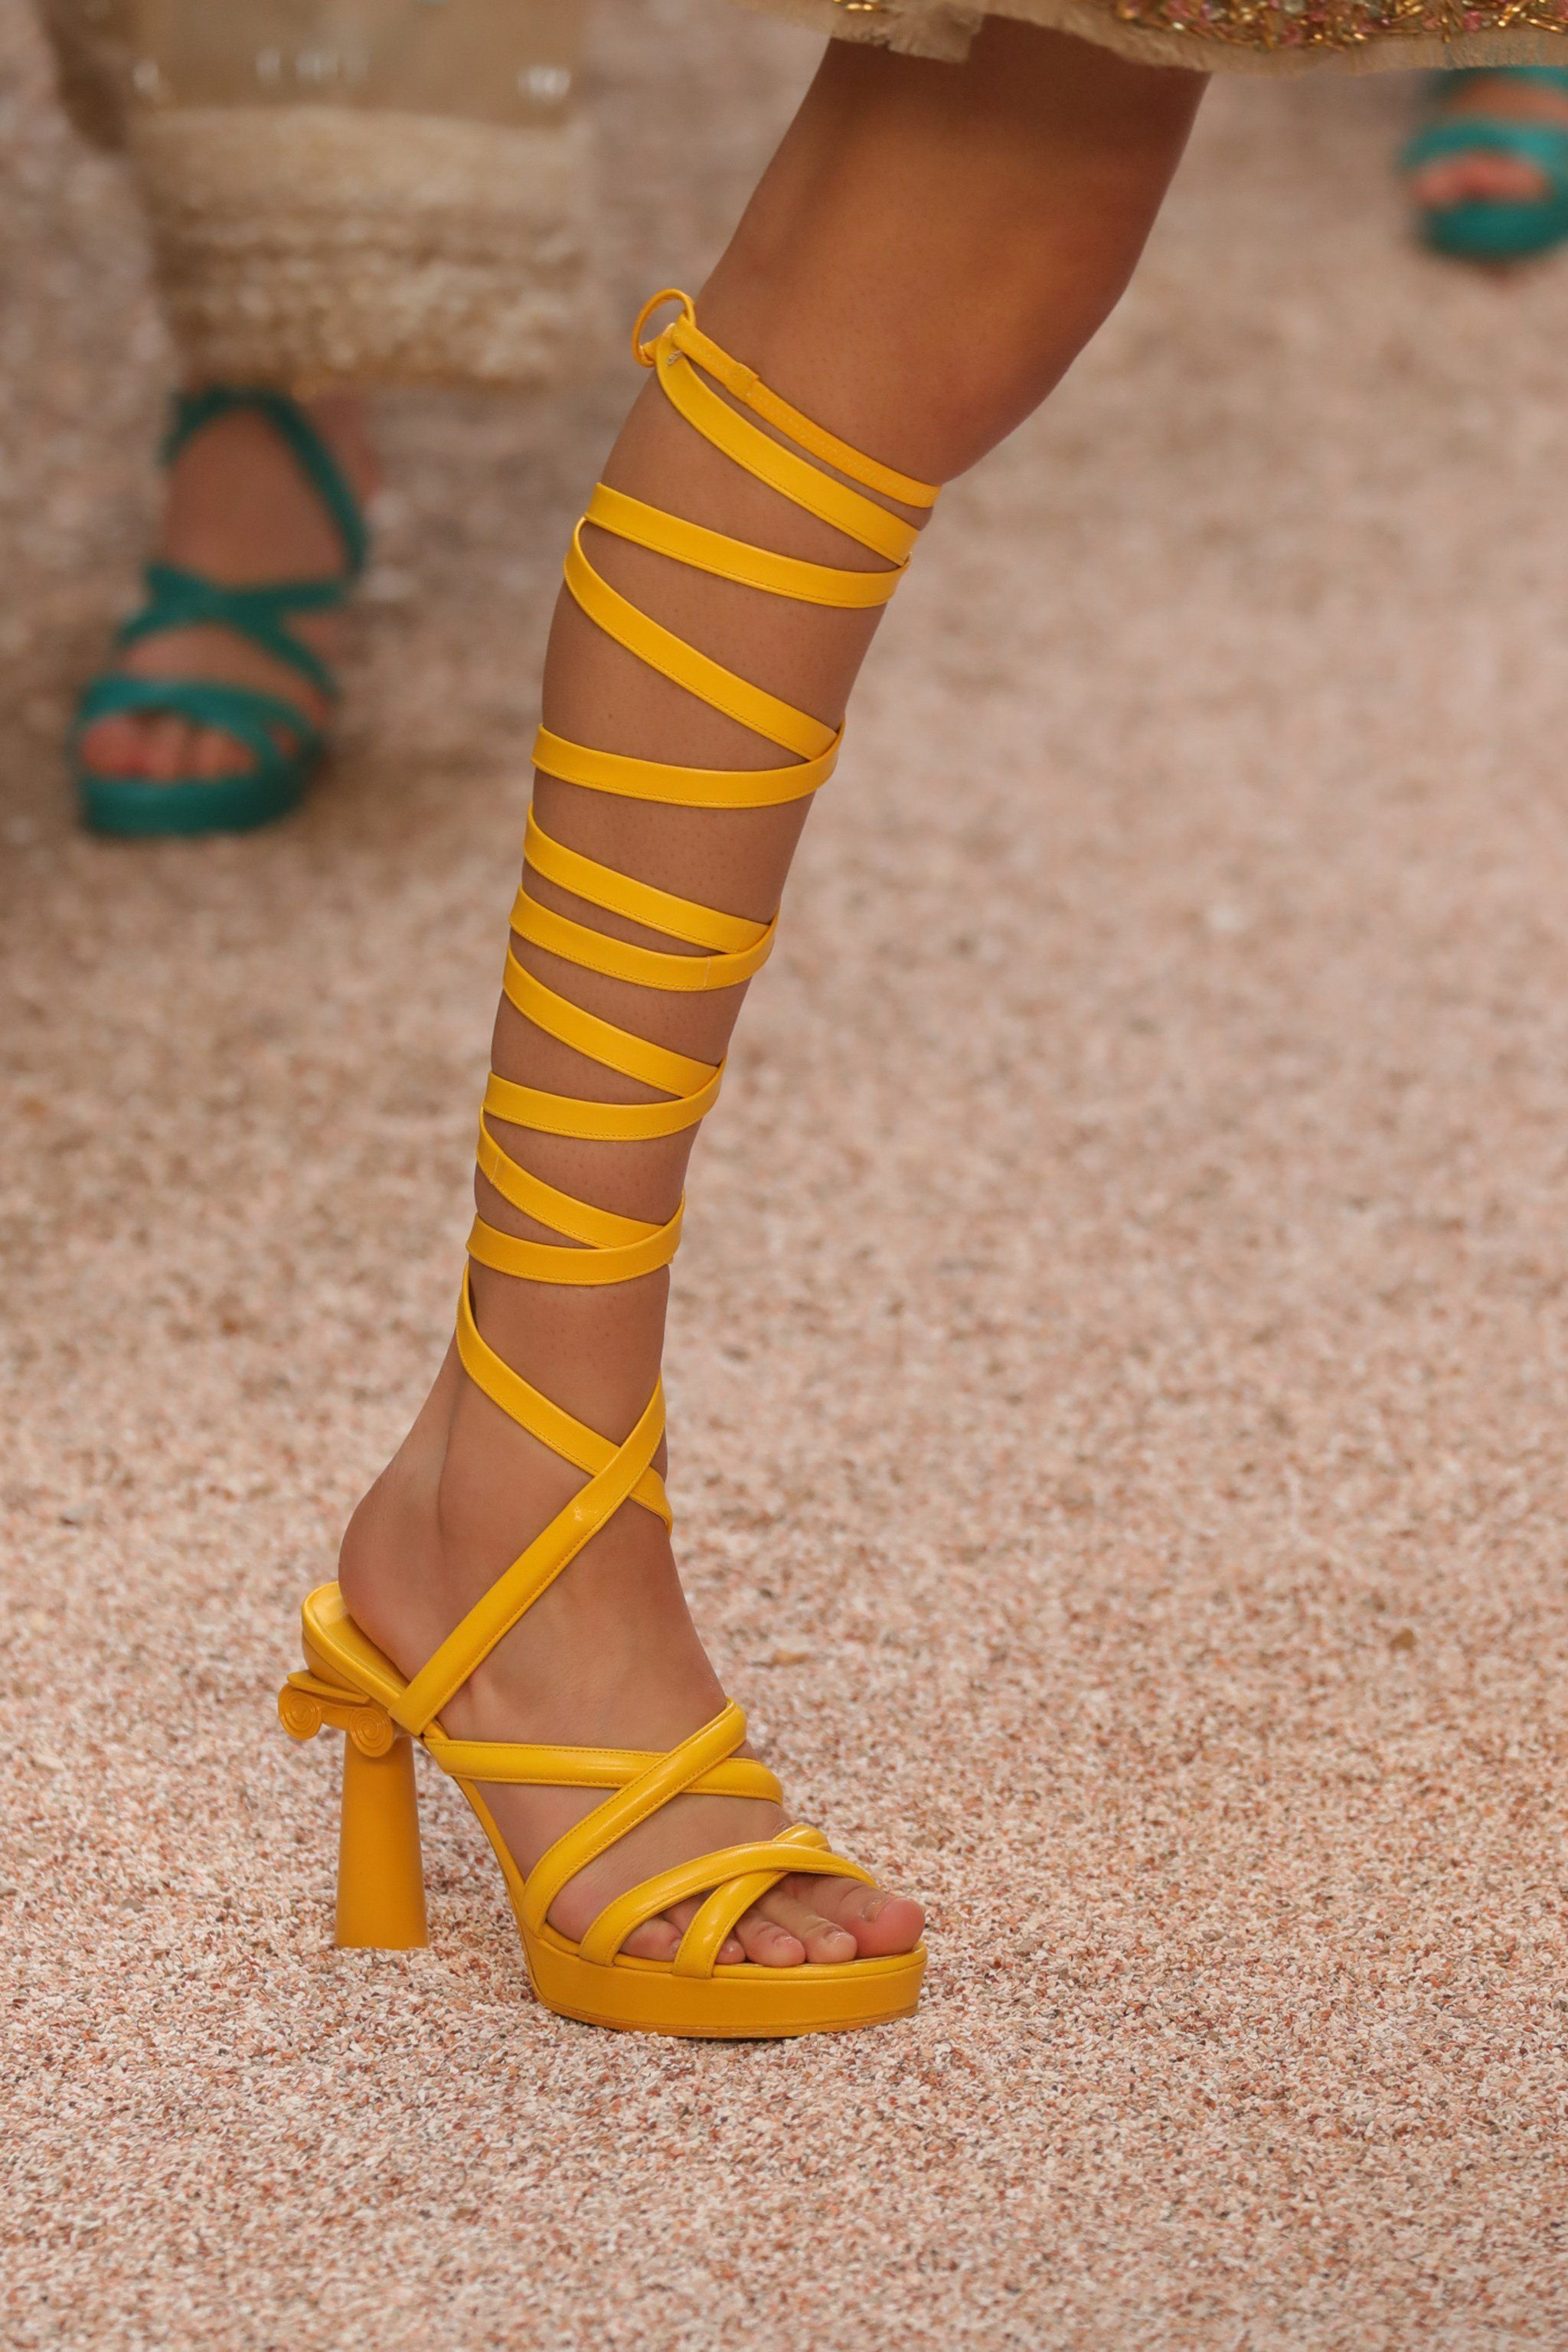 461d90ac25d2 The Footwear of Choice Was Grecian Style Heels